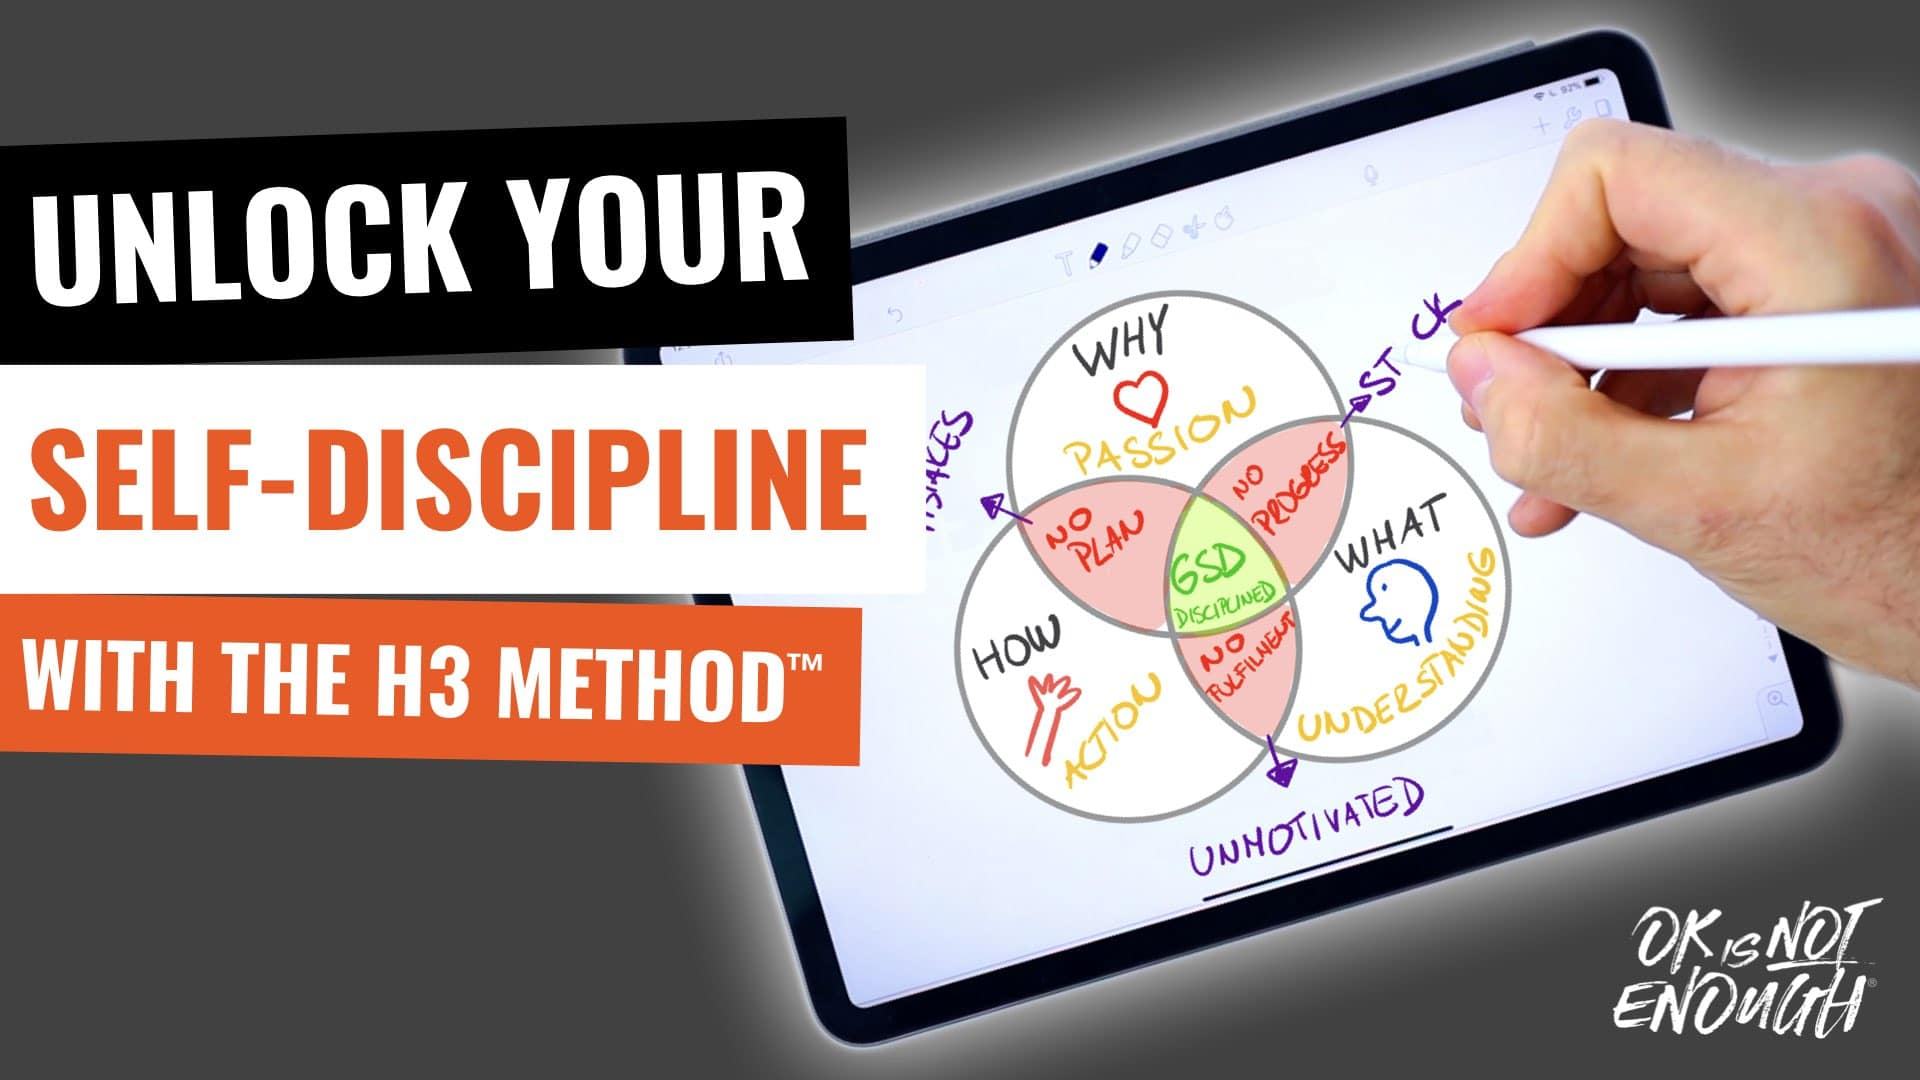 Unlock Your Self-Discipline with The H3 Method™